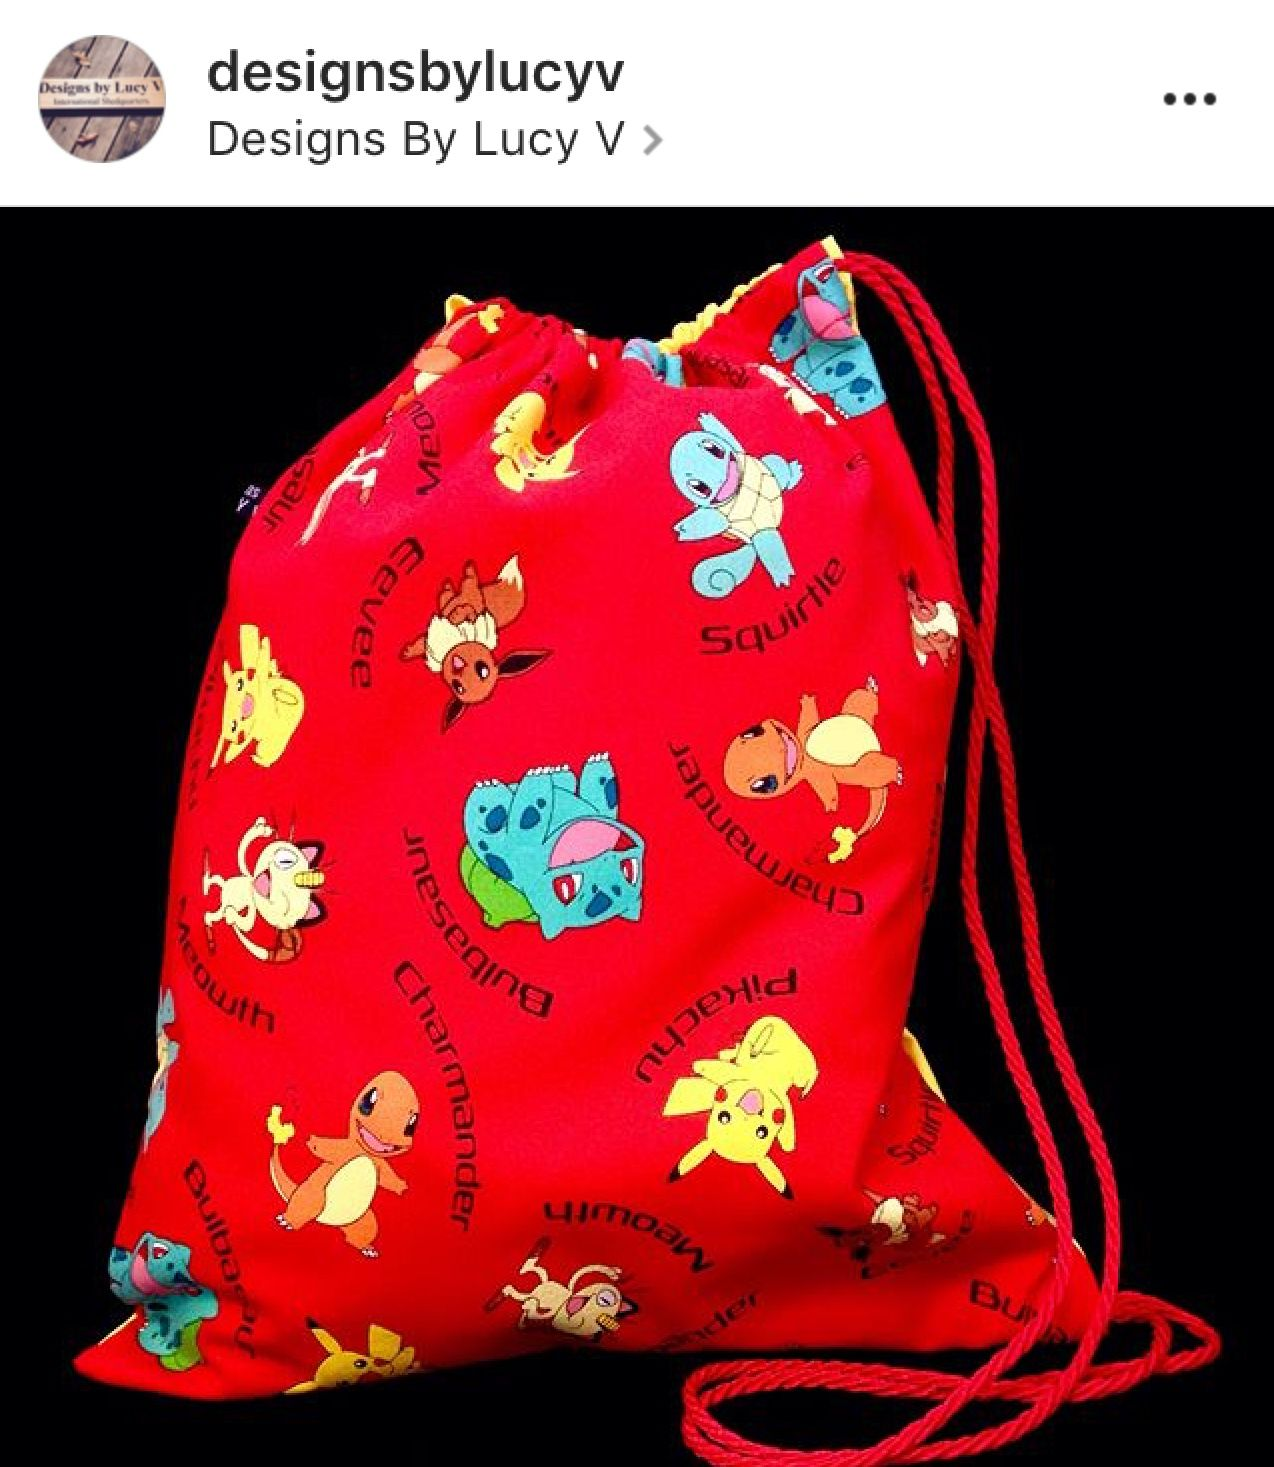 cf05d3bb0ea7 Custom order Pokémon drawstring bag. See this and more at  www.designsbylucyv.com